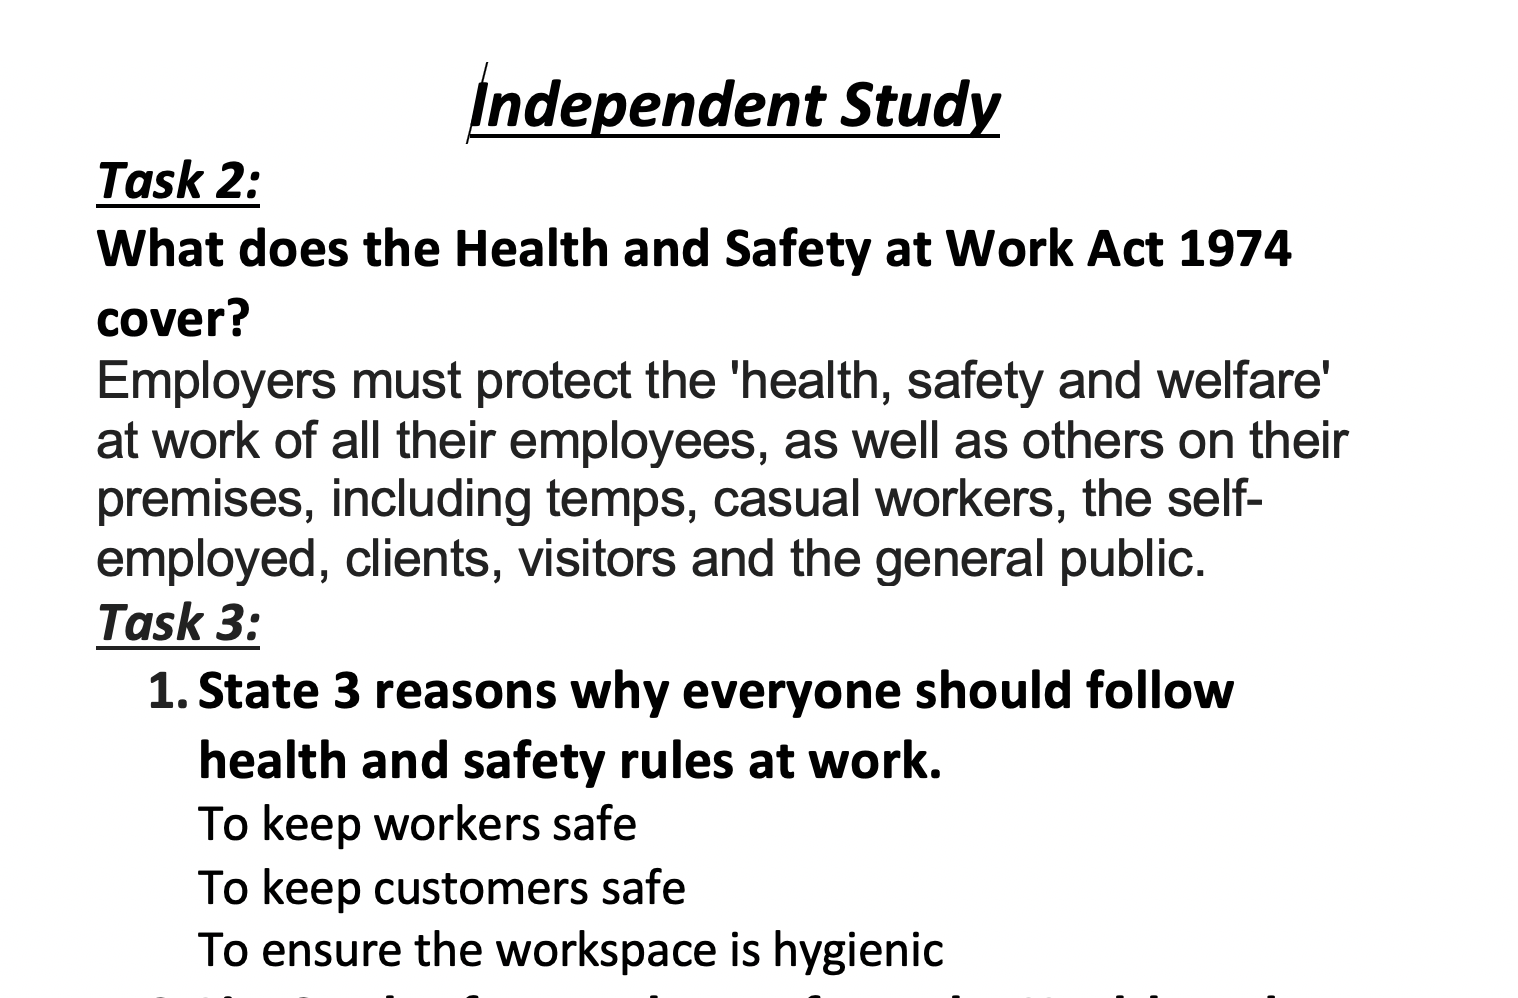 28/04/20 - Health and Safety